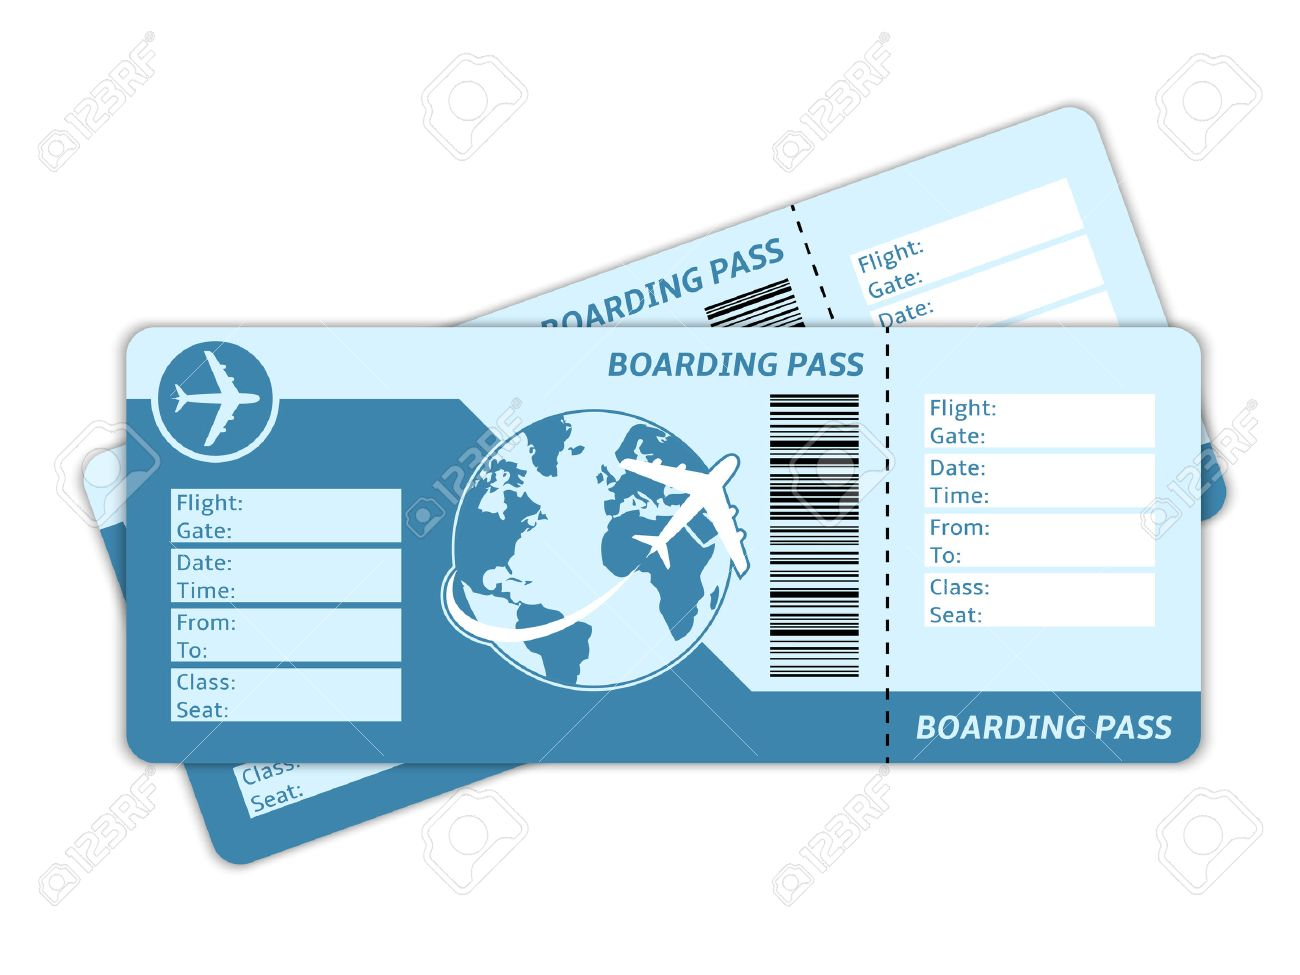 Blank plane tickets for business trip travel or vacation journey isolated vector illustration - 25950620